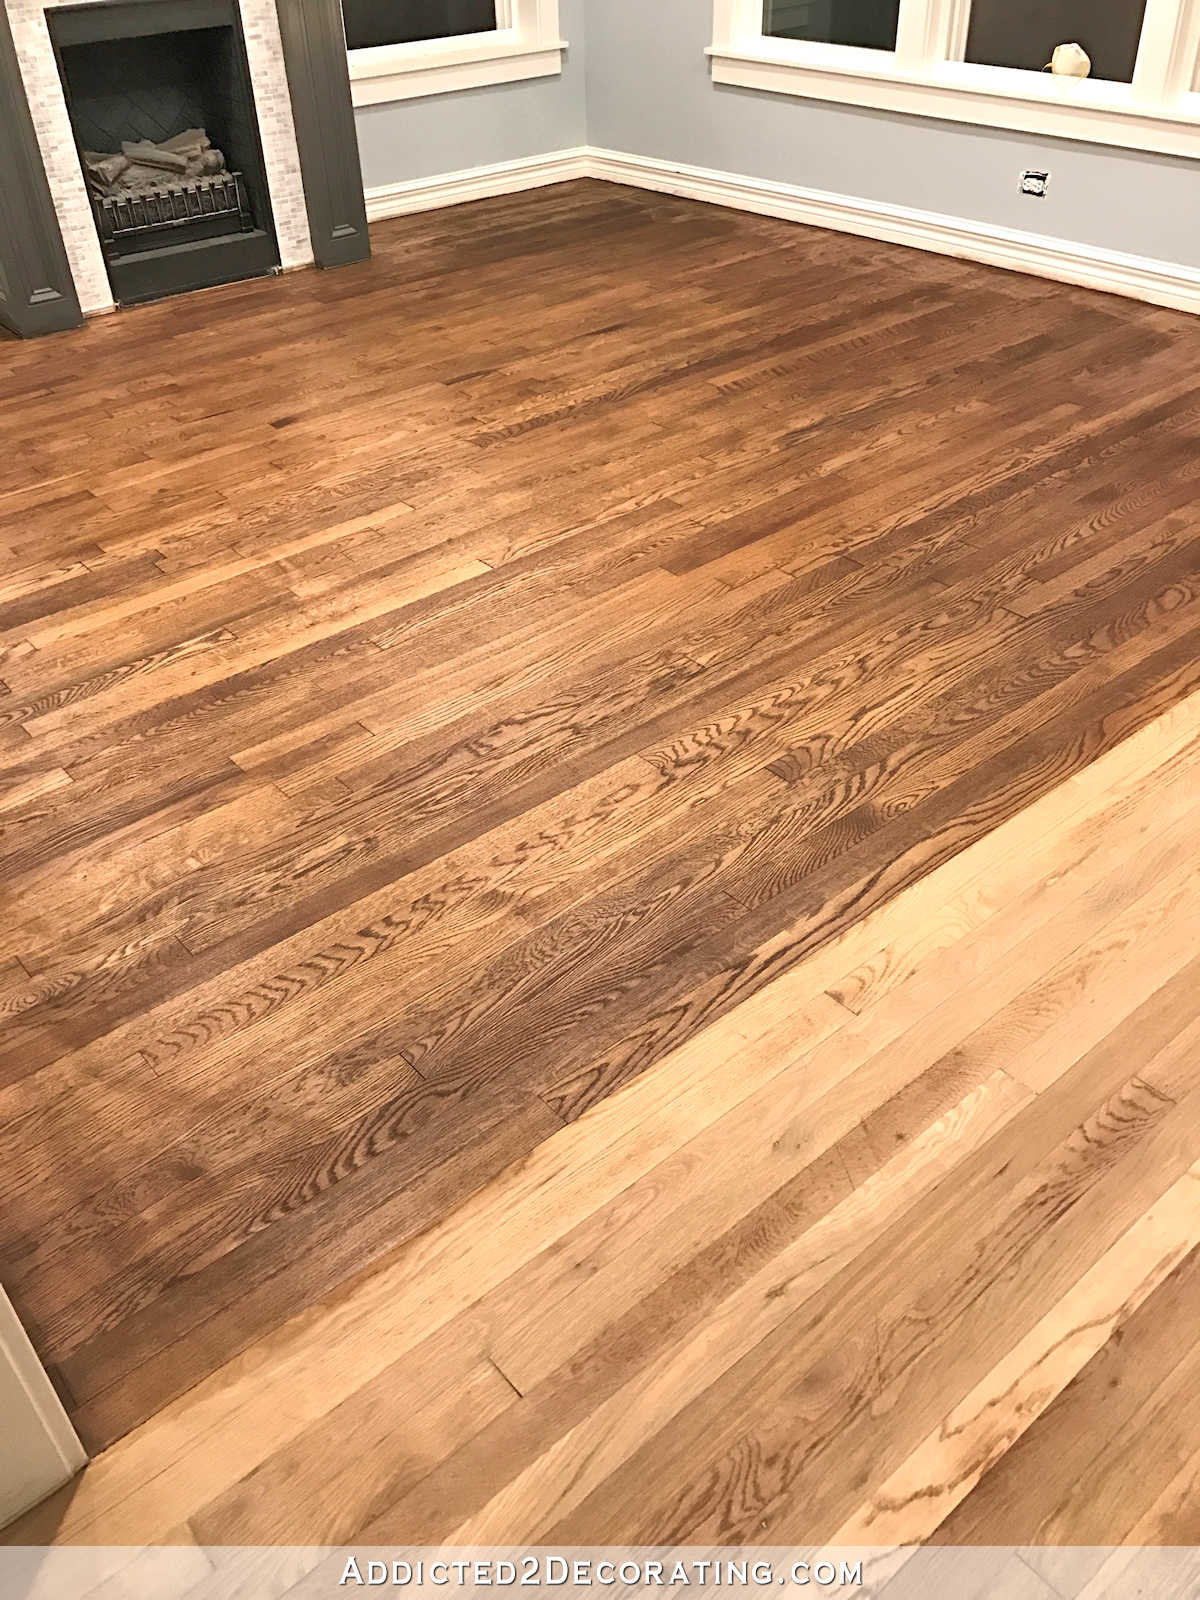 18 Wonderful Hardwood Floor Stain Colors For Oak Unique Flooring